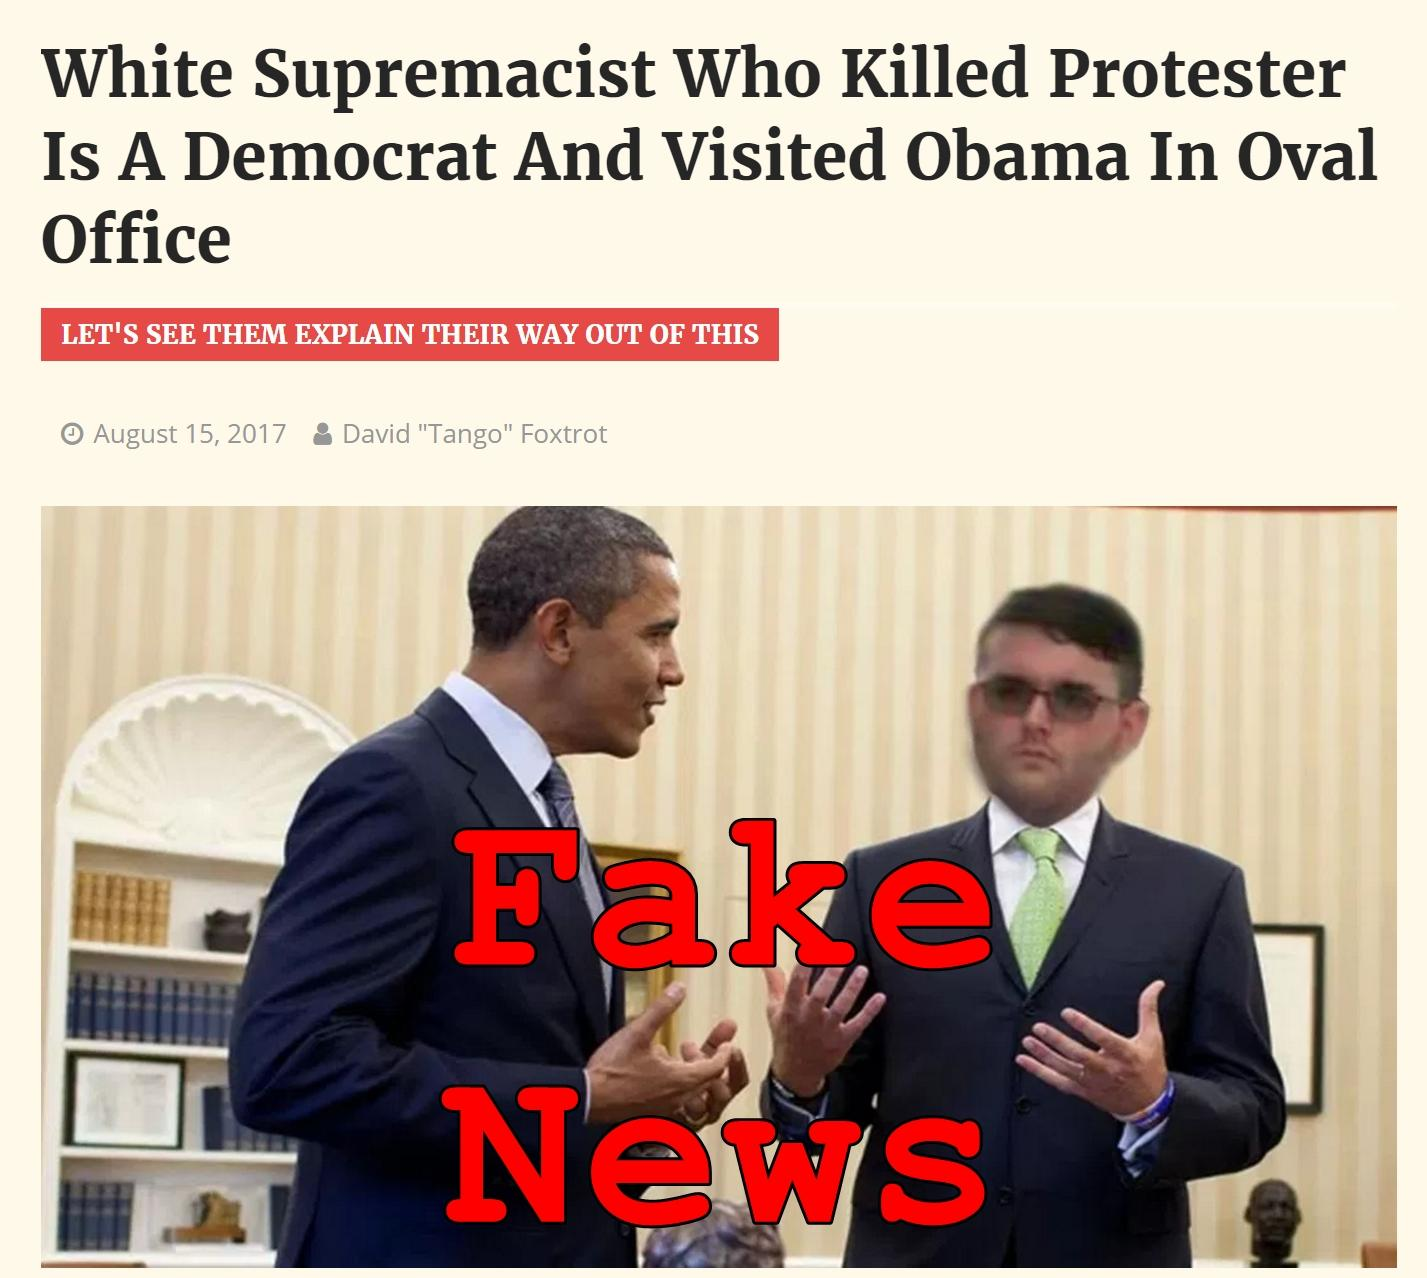 Fake News: White Supremacist Who Killed Protester NOT A Democrat, Did NOT Visit Obama In Oval Office